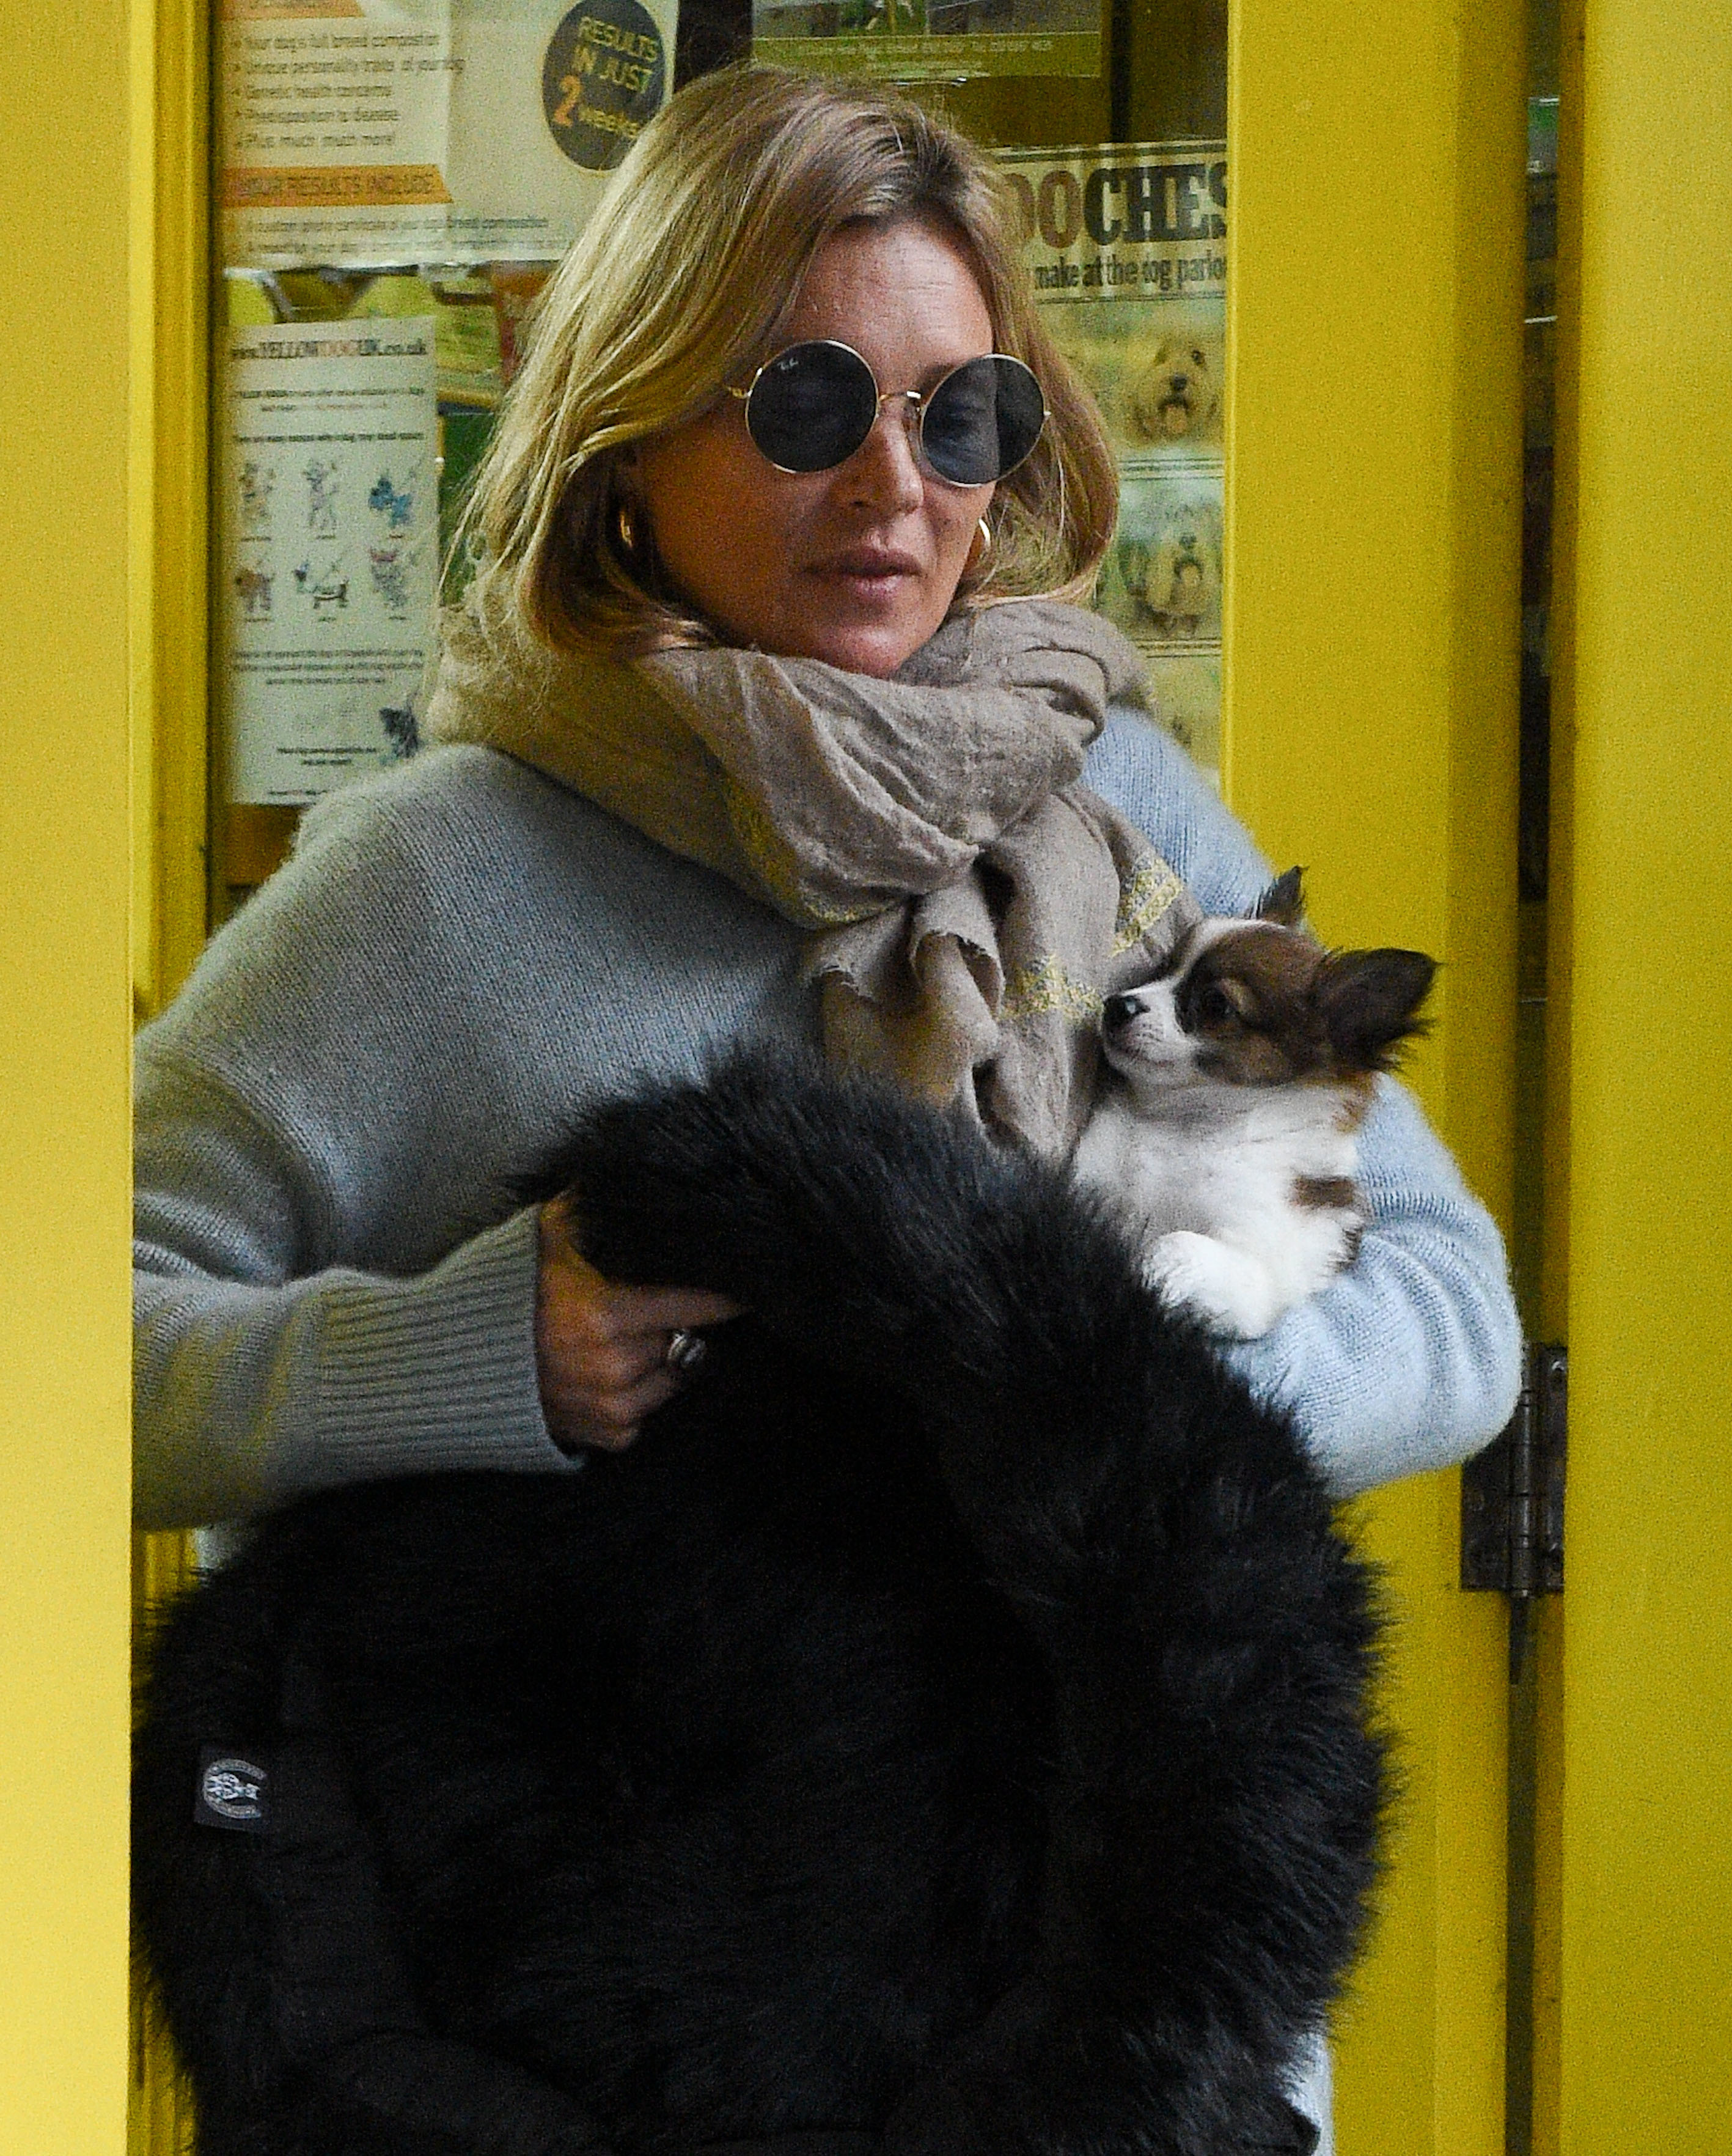 Supermodel Kate Moss was seen with a new puppy dog in the Primrose Hill neighborhood of England on Nov. 27, 2017.